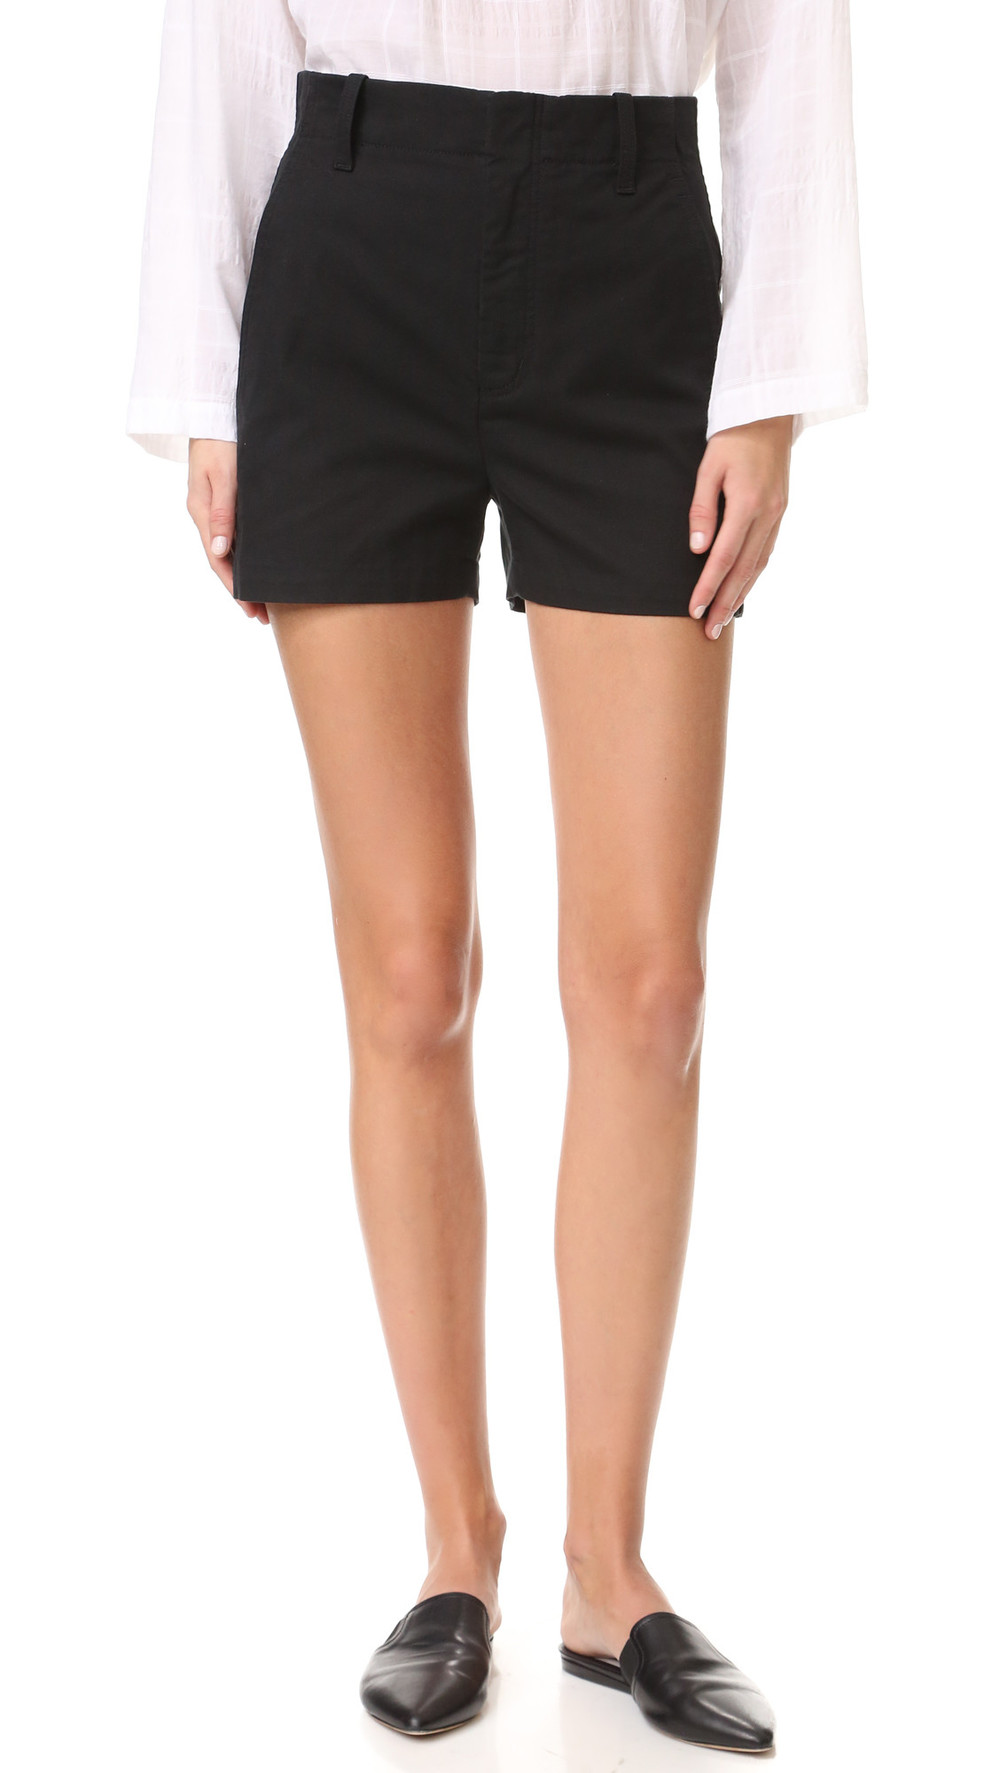 Vince - chino shorts - women - Cotton/Linen/Flax/Lyocell - 6, Nude ...